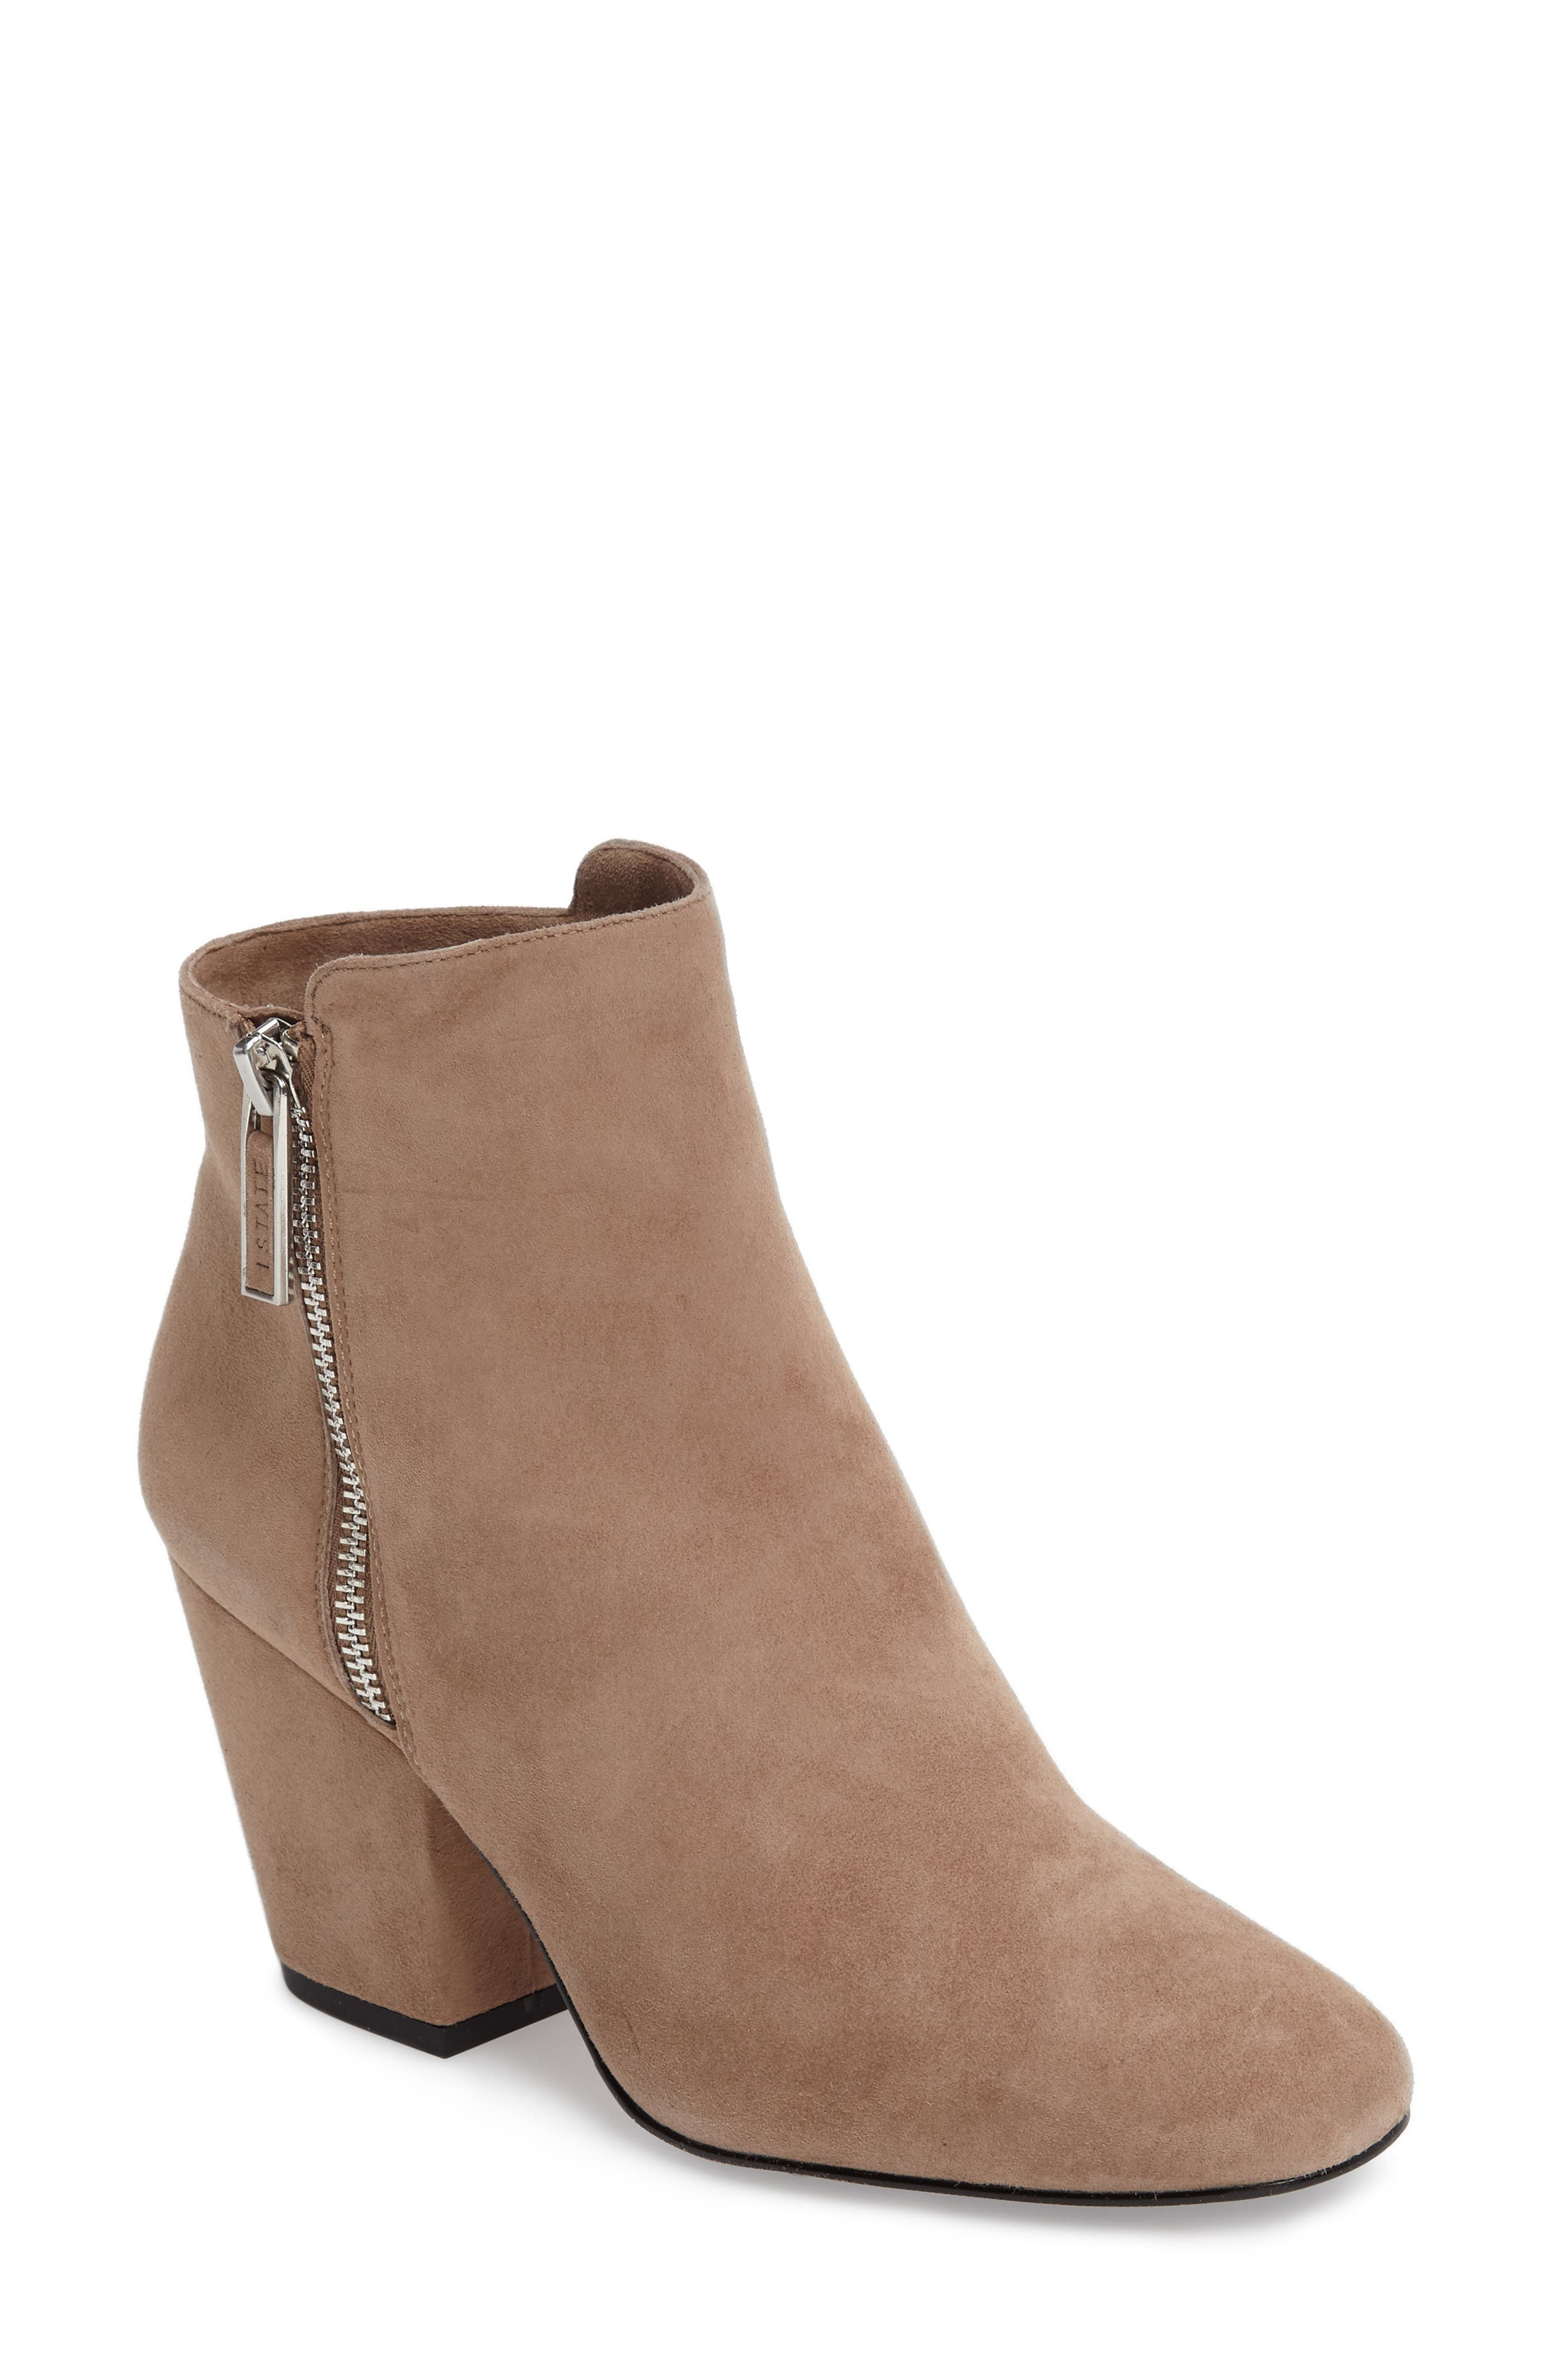 Alternate Image 1 Selected - 1.STATE Jacend Zip Bootie (Women)